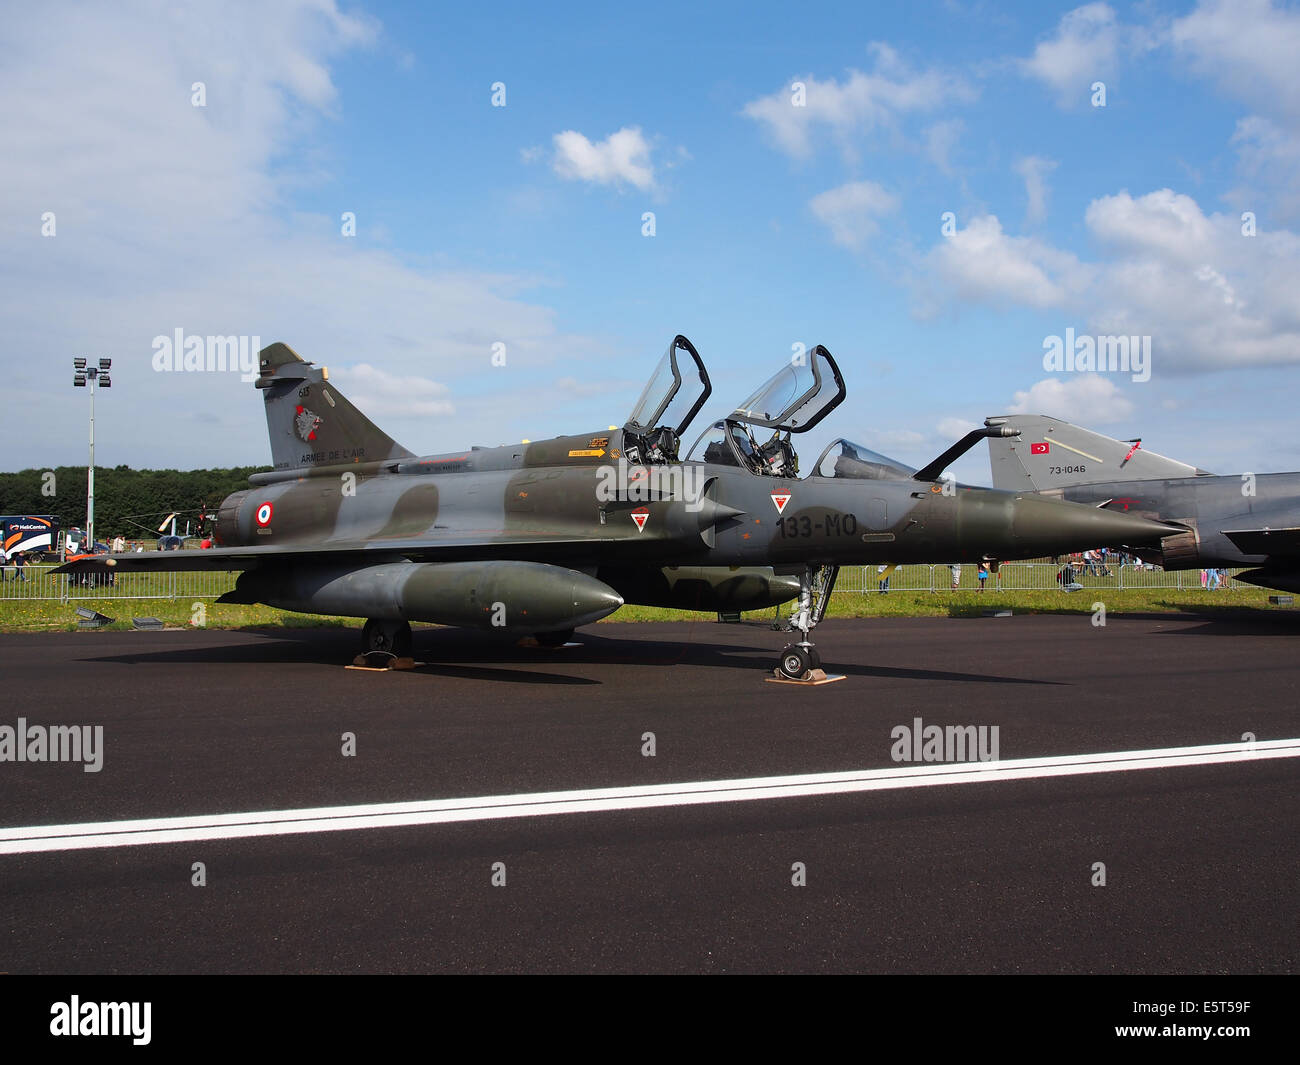 Greece Air Force Dassault Mirage 2000D 613 133-MO (cn 410), pic2 - Stock Image